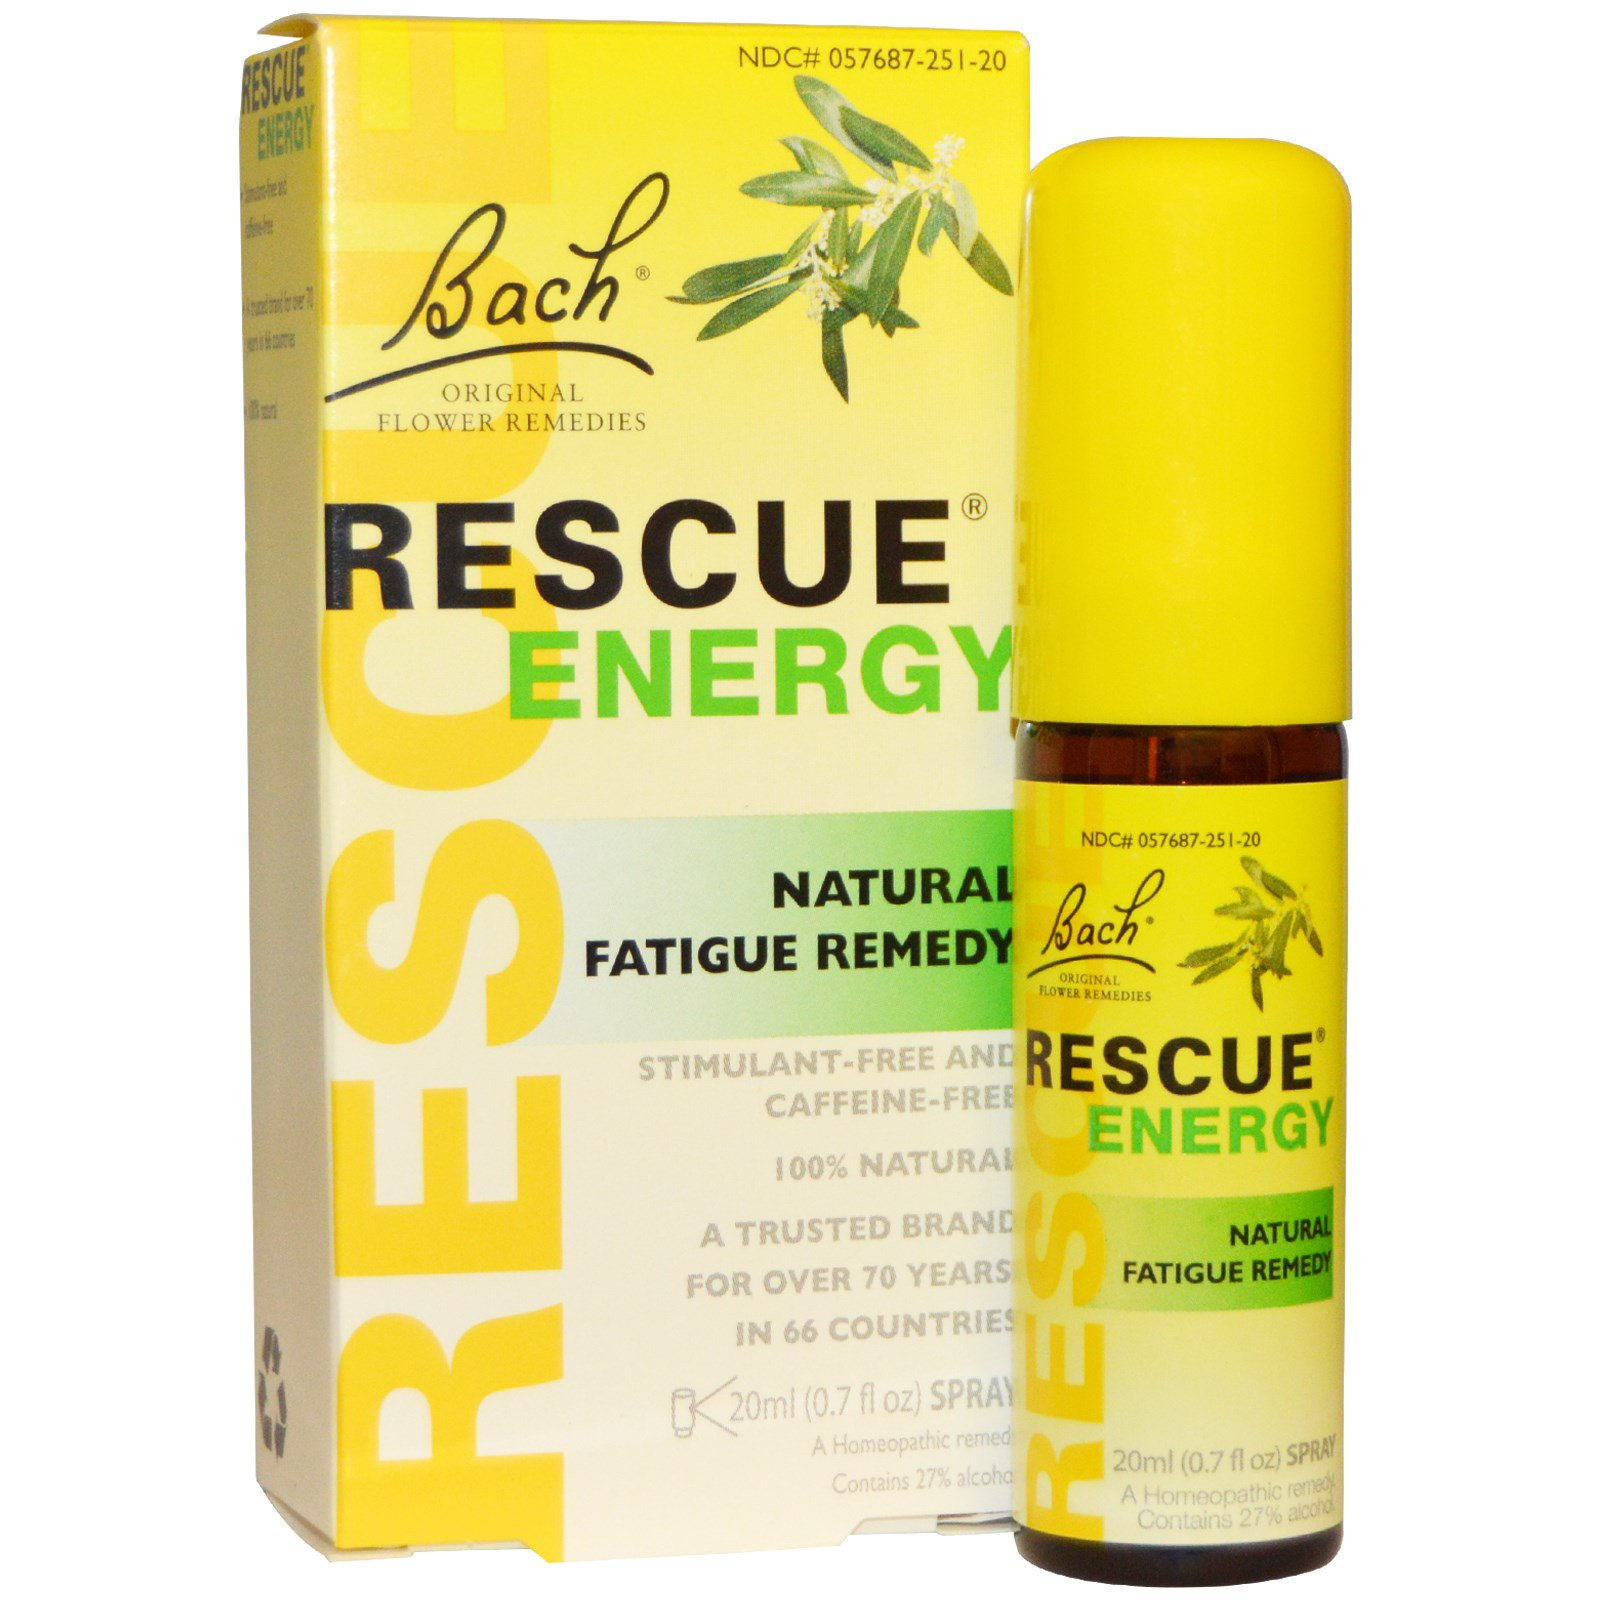 Bach Original Flower Remedies Rescue Energy Natural Fatigue